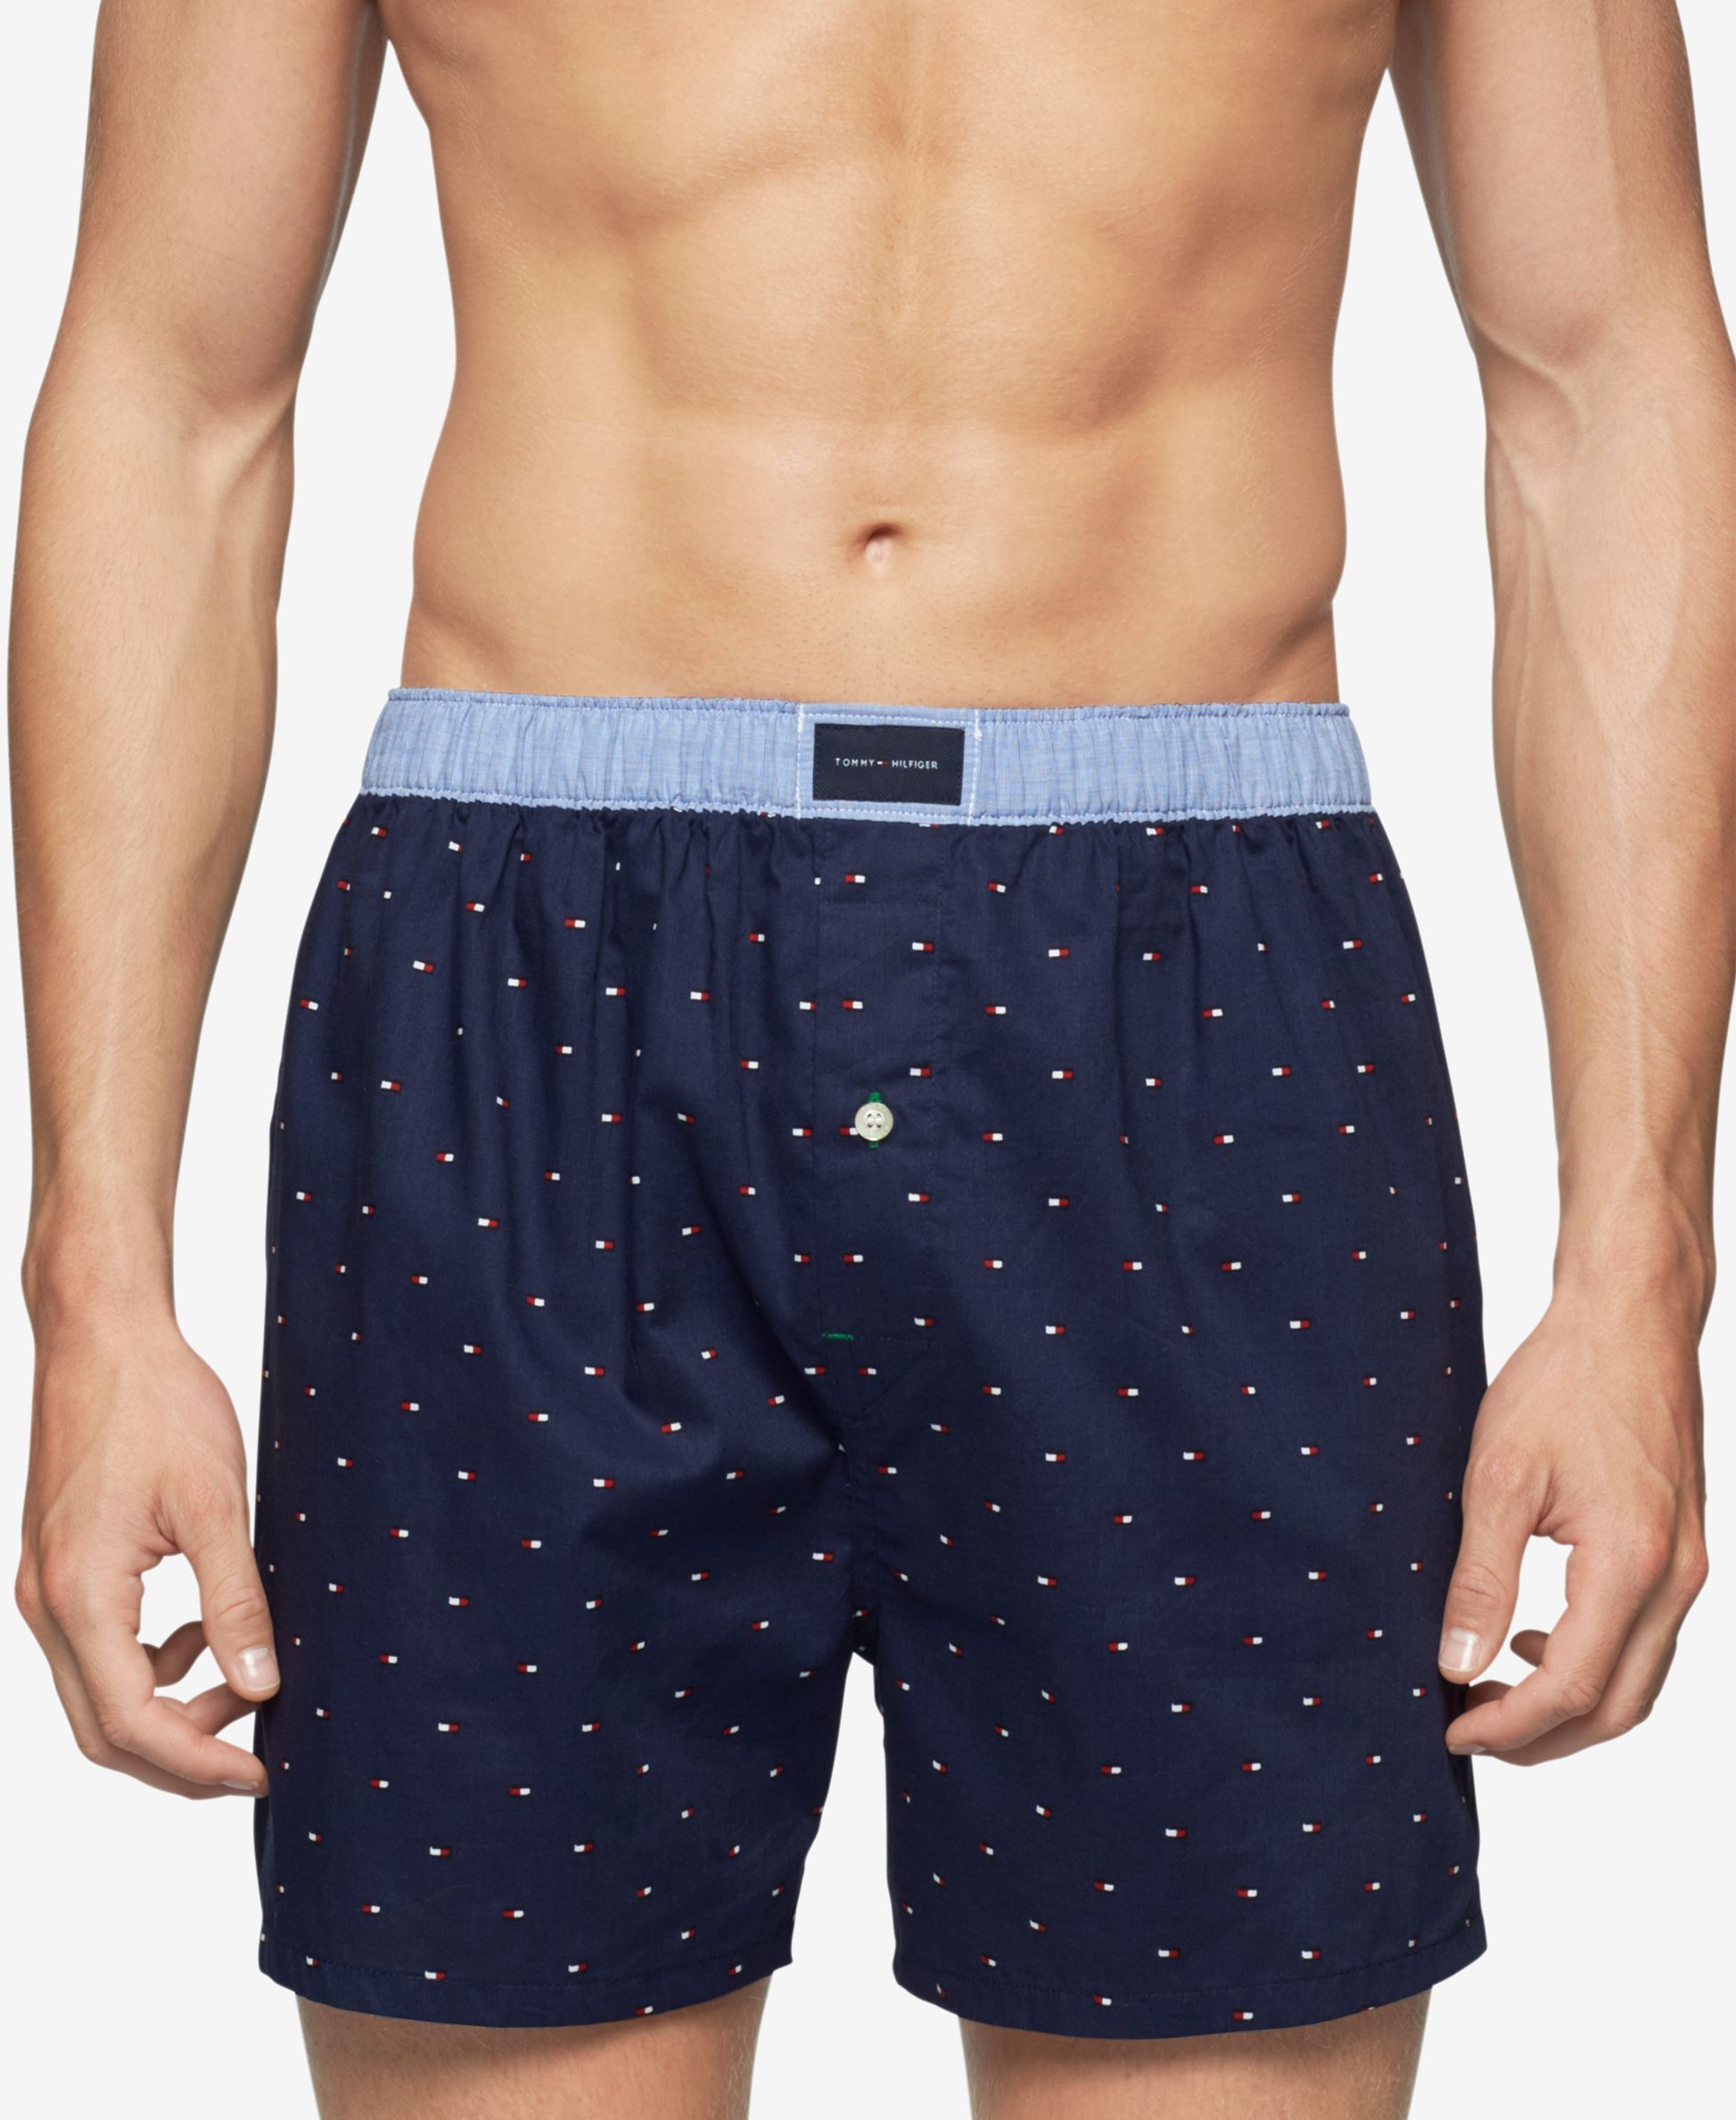 5acc3e1837 Tommy Hilfiger Men's Printed Woven Boxers   Products   Tommy ...